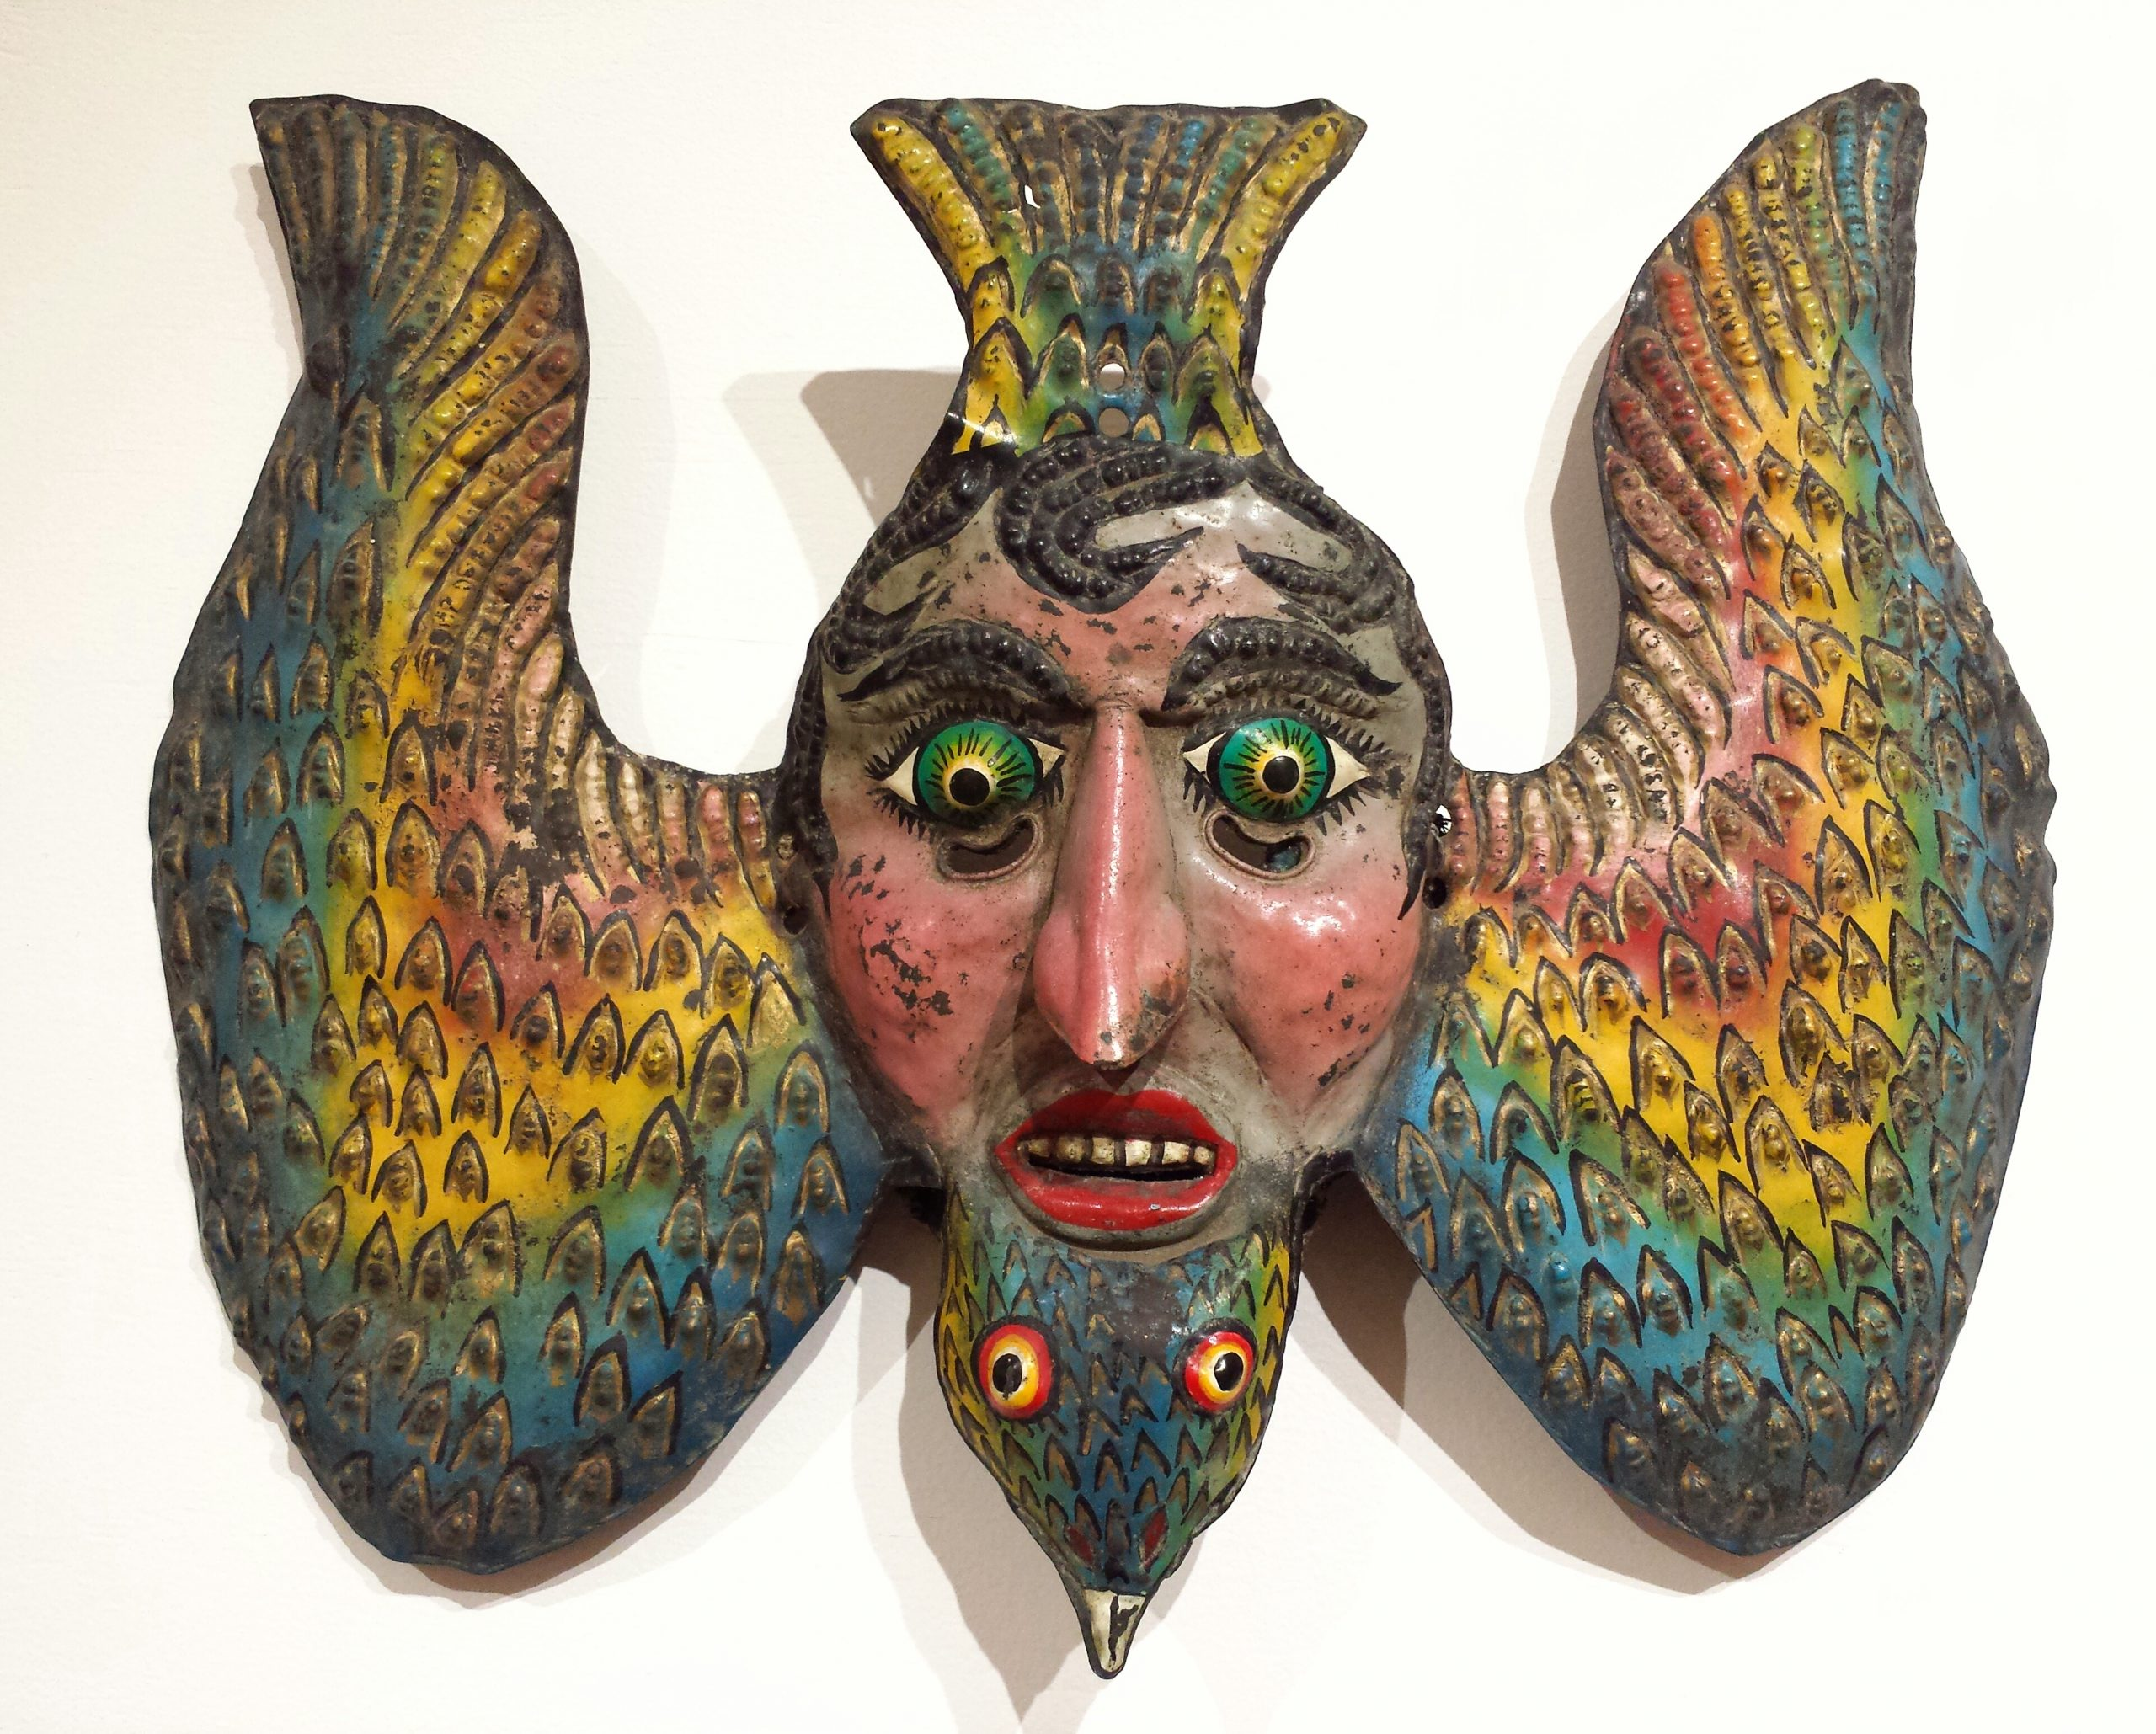 Carved wood bird and face mask from Mexico